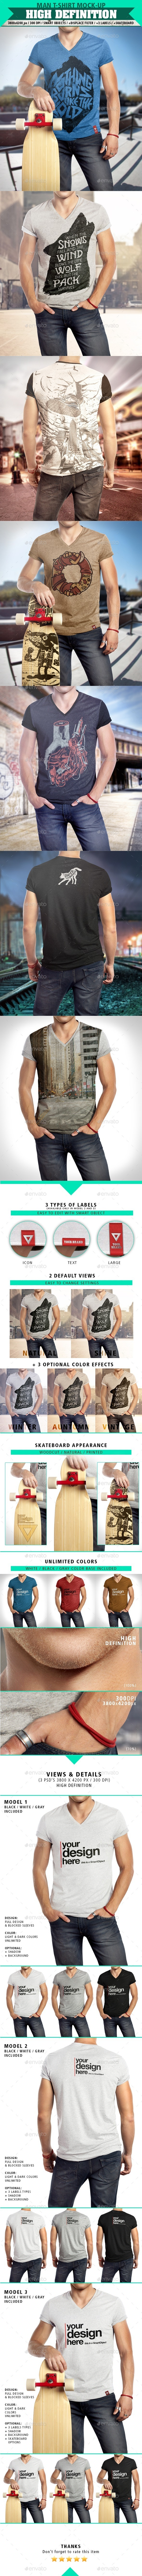 T-Shirt Vneck Man Mock-up  - T-shirts Apparel